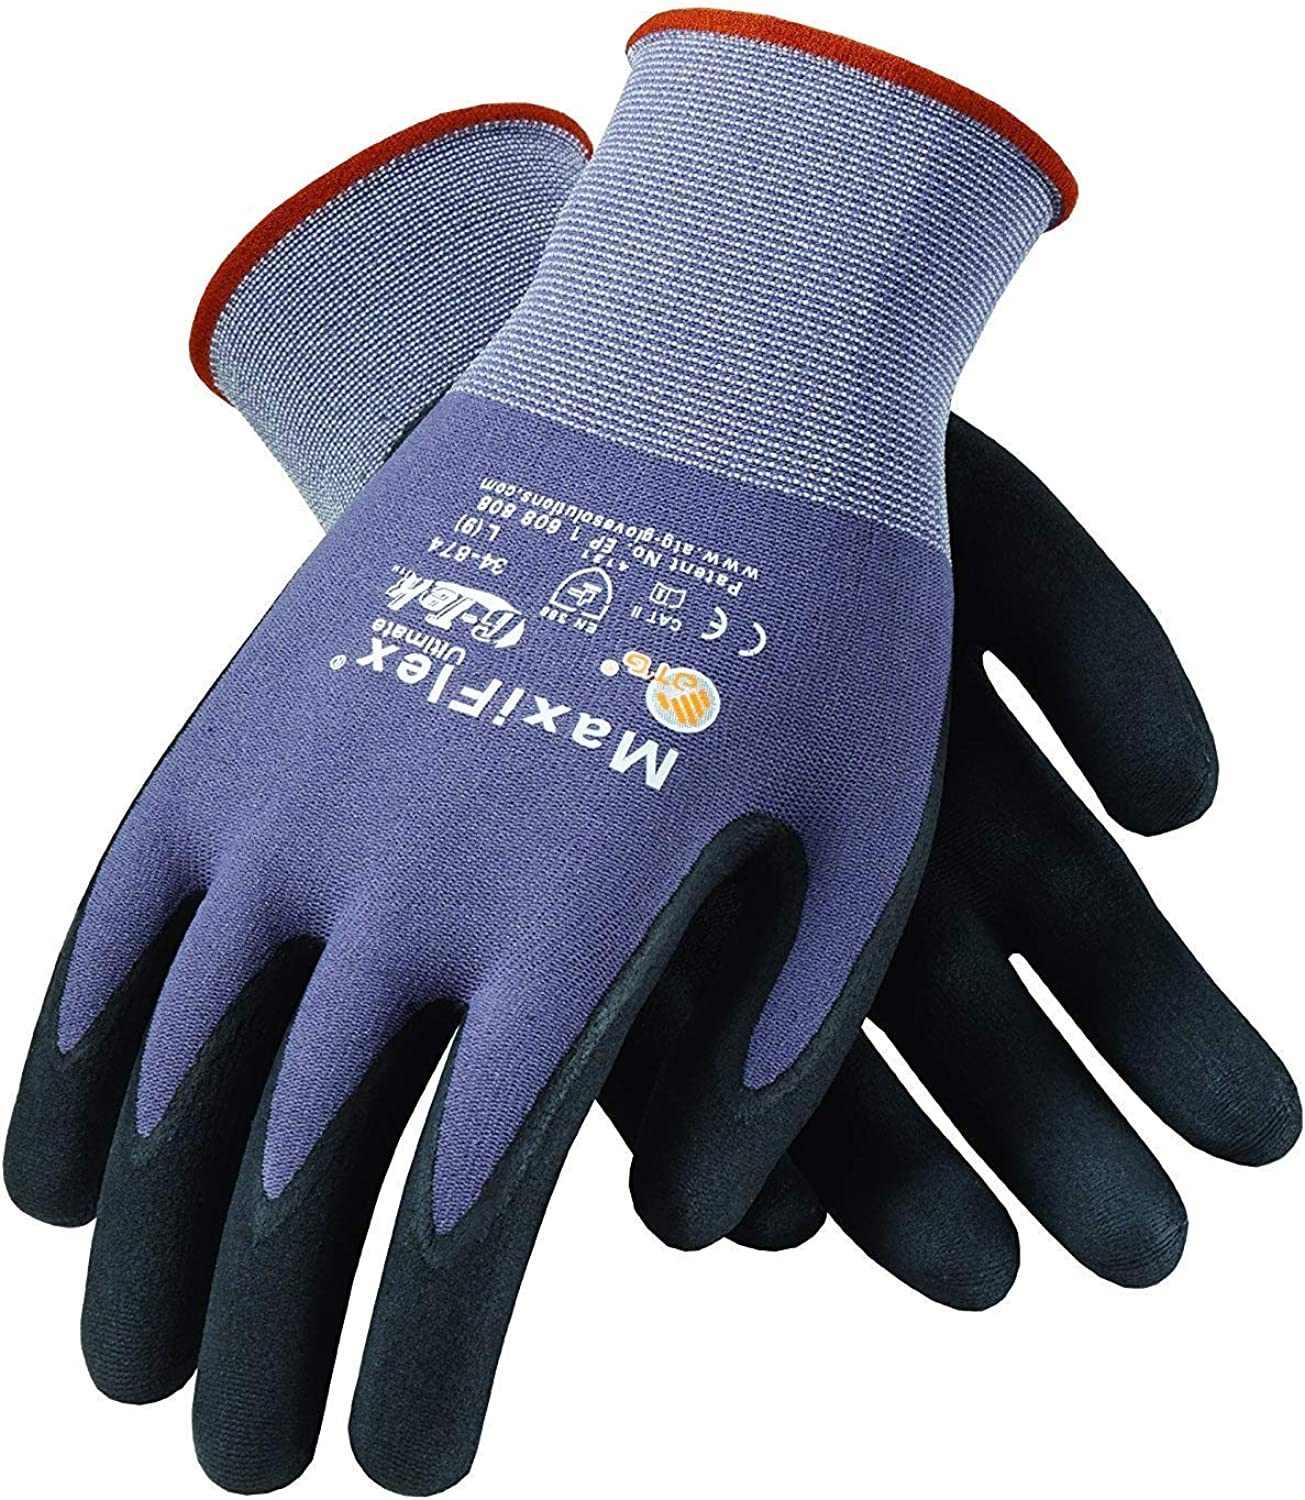 12 Pairs Weekly update Pack 2021 spring and summer new MaxiFlex 34-874 Pal Gloves Grip Micro-Foam Nitrile